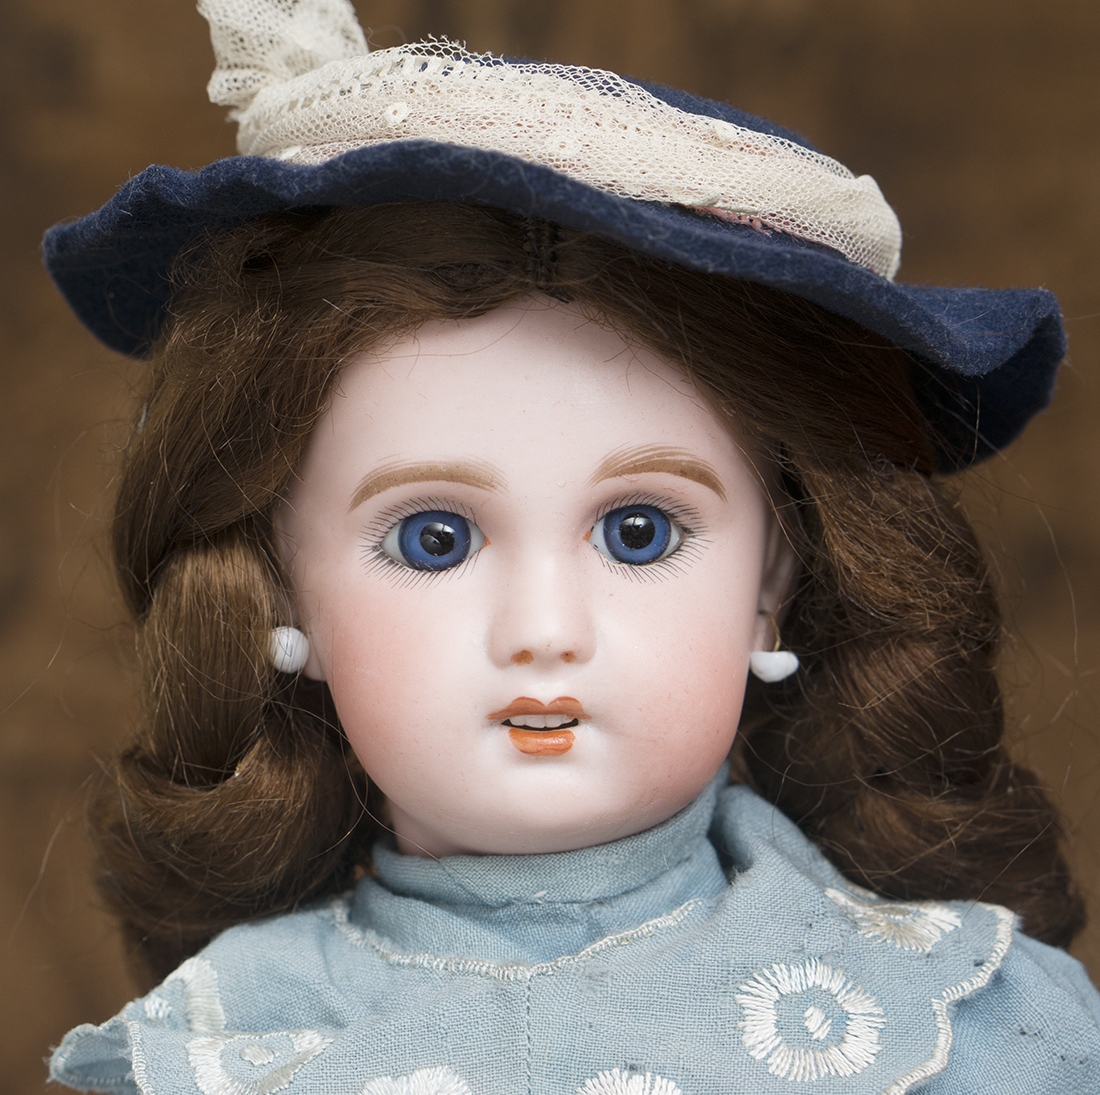 Antique French Bisque Bebe doll by SFBJ